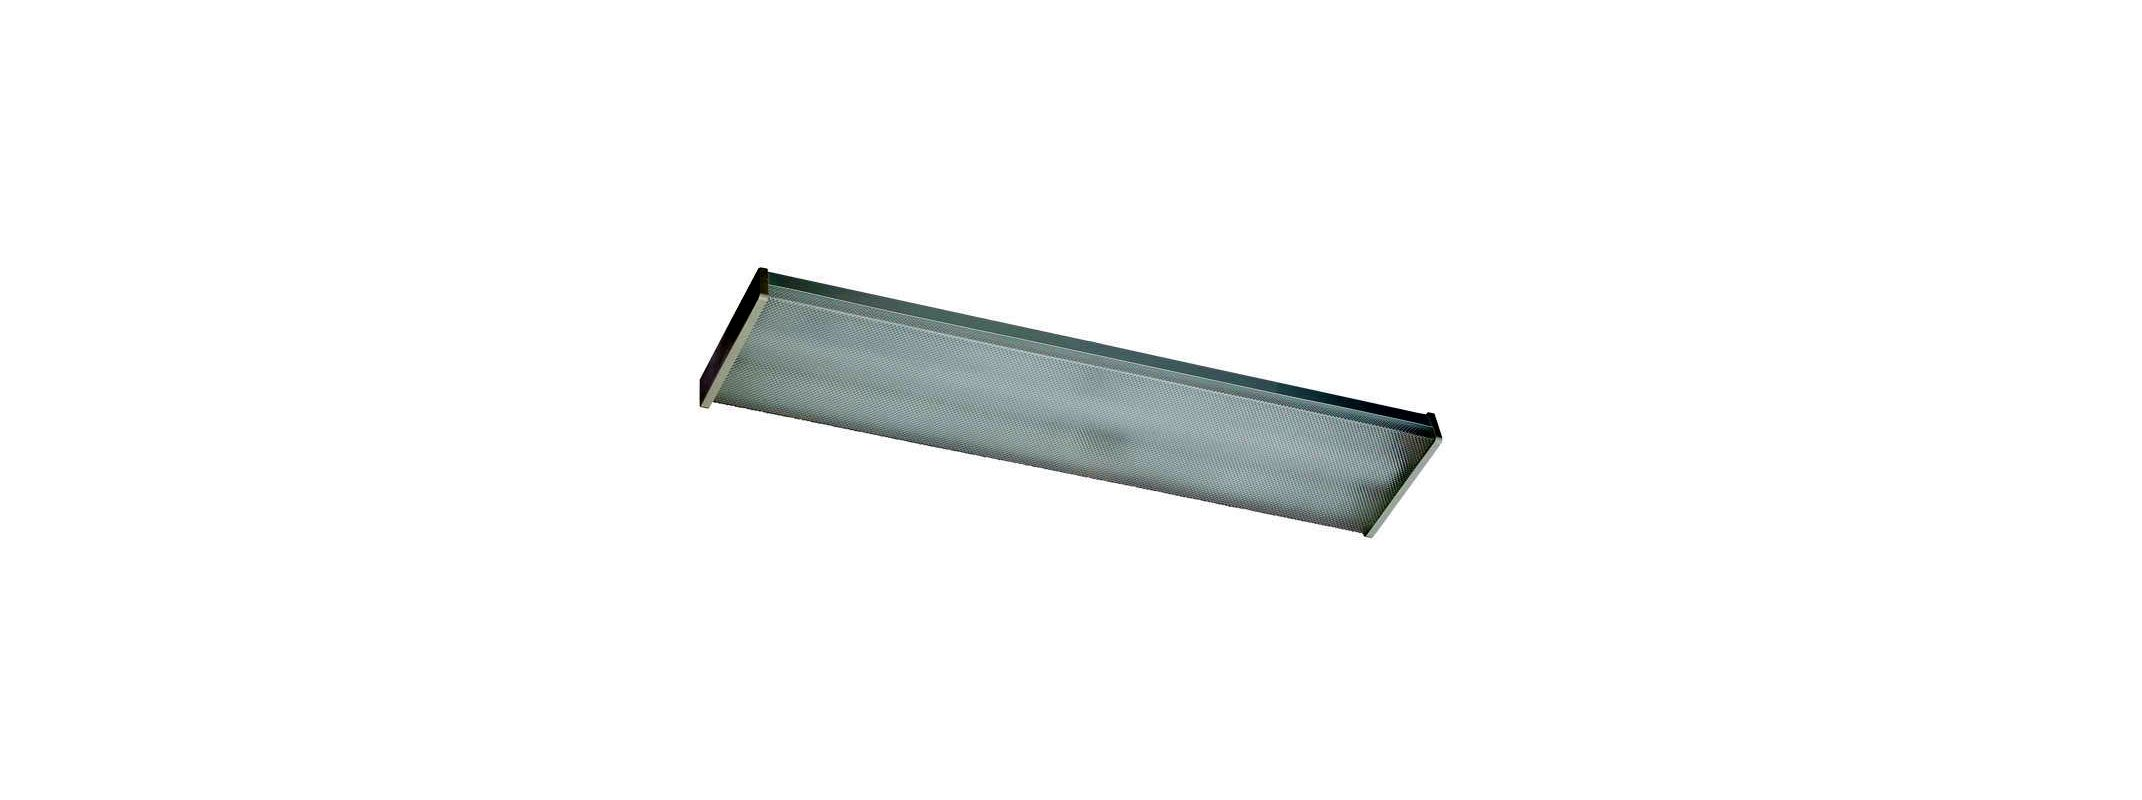 Quorum International Q82148-2 2 Light Flushmount Fluorescent Energy